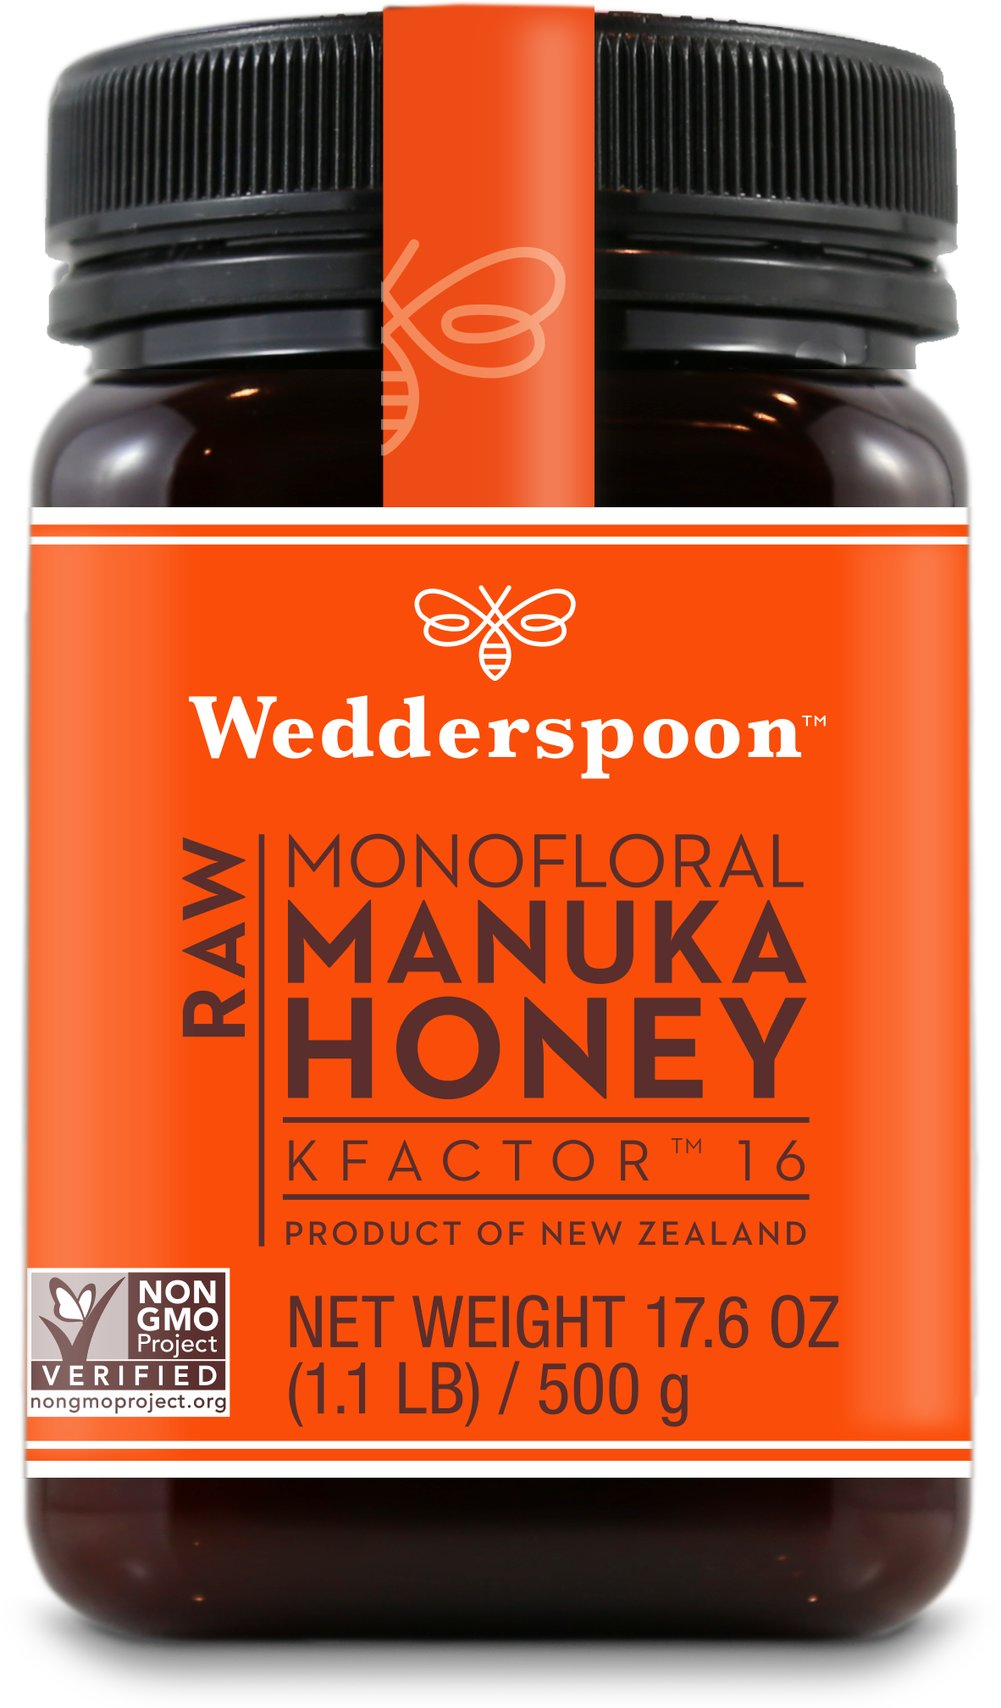 100% Raw Premium Manuka Honey Active 16+ <p><strong>From the Manufacturer's Label:</strong></p><p><strong></strong>100% Raw, unpasteurized authentic Manuka Honey direct from New Zealand.</p><p>We Guarantee:</p><ul><li>Antibiotic and GMO-Free Honey</li><li>Hives are made from environmentally friendly material</li><li>Our packaging is BPA Free</li><li>Smooth, creamy, unpasteurized genuin